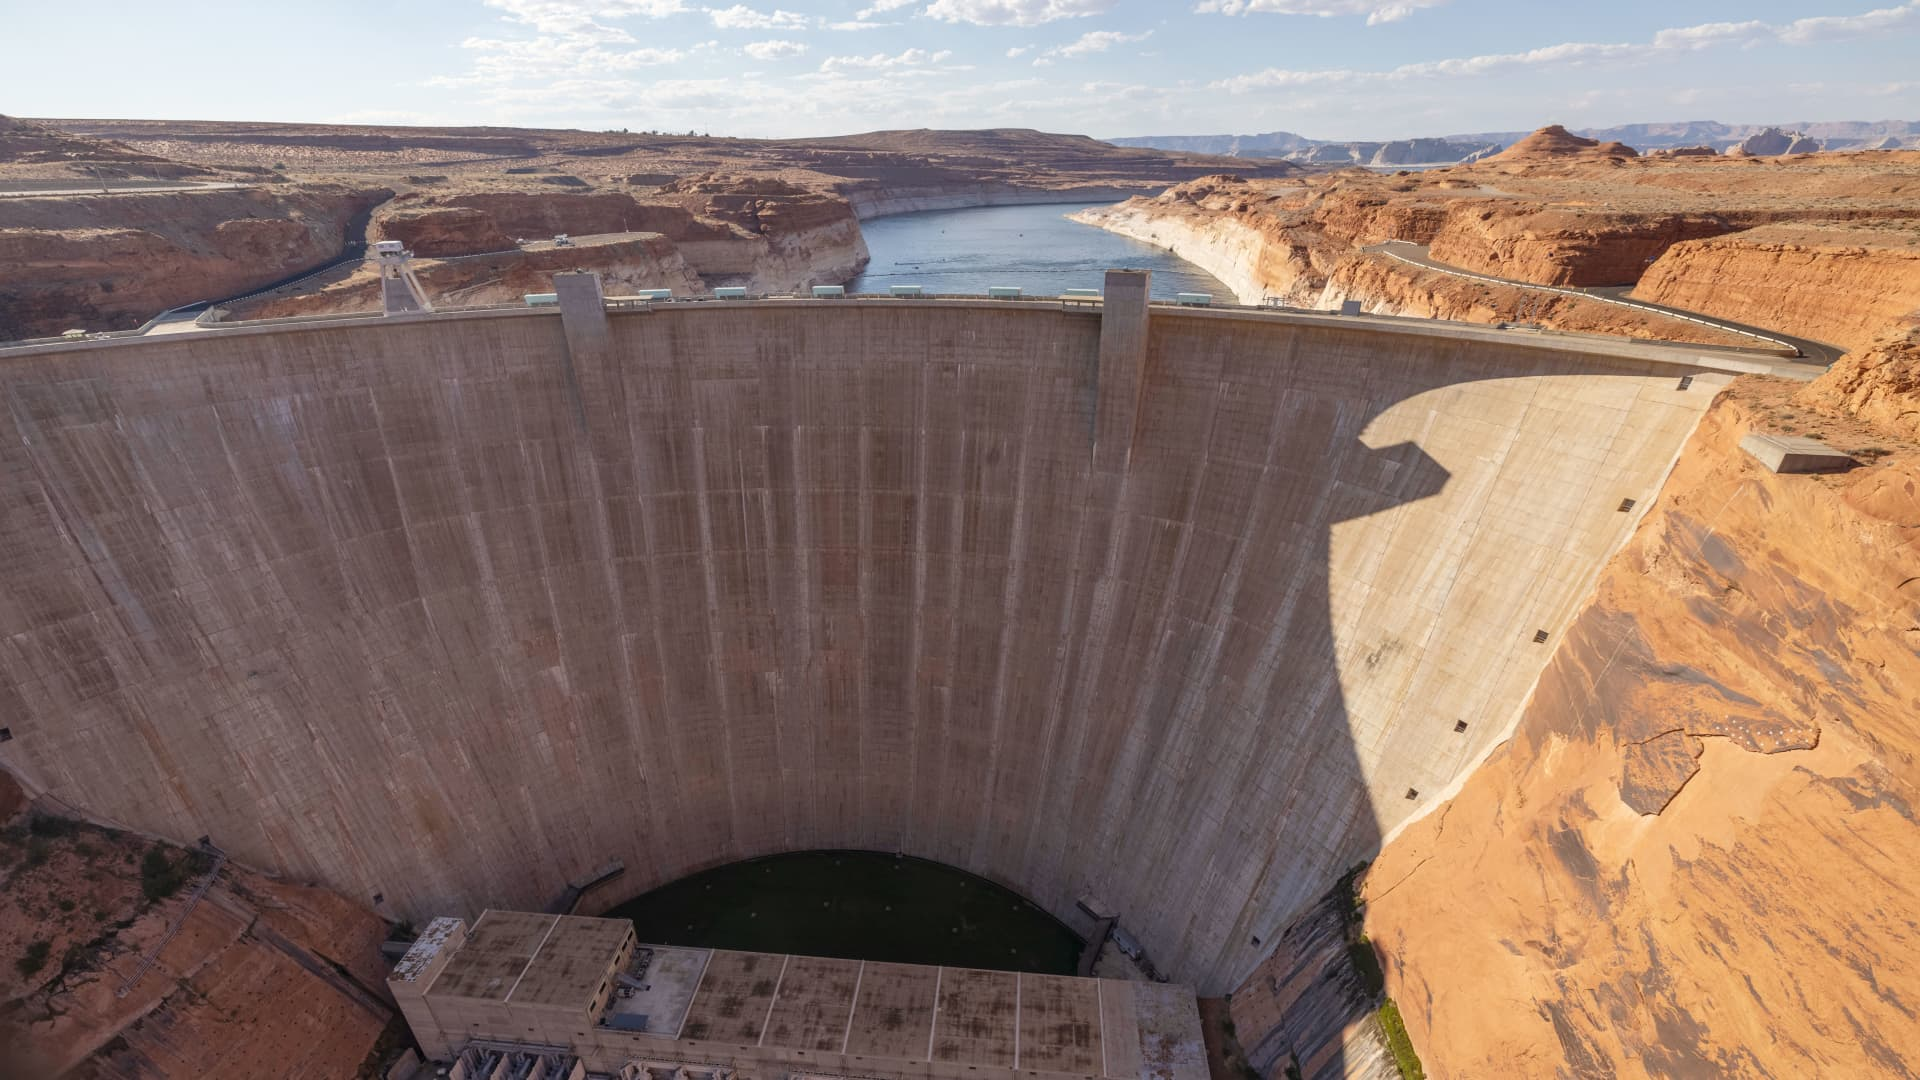 Glen Canyon Dam is seen, behind which are record low water levels at Lake Powell, as the drought continues to worsen on July 2, 2021 near Page, Arizona.